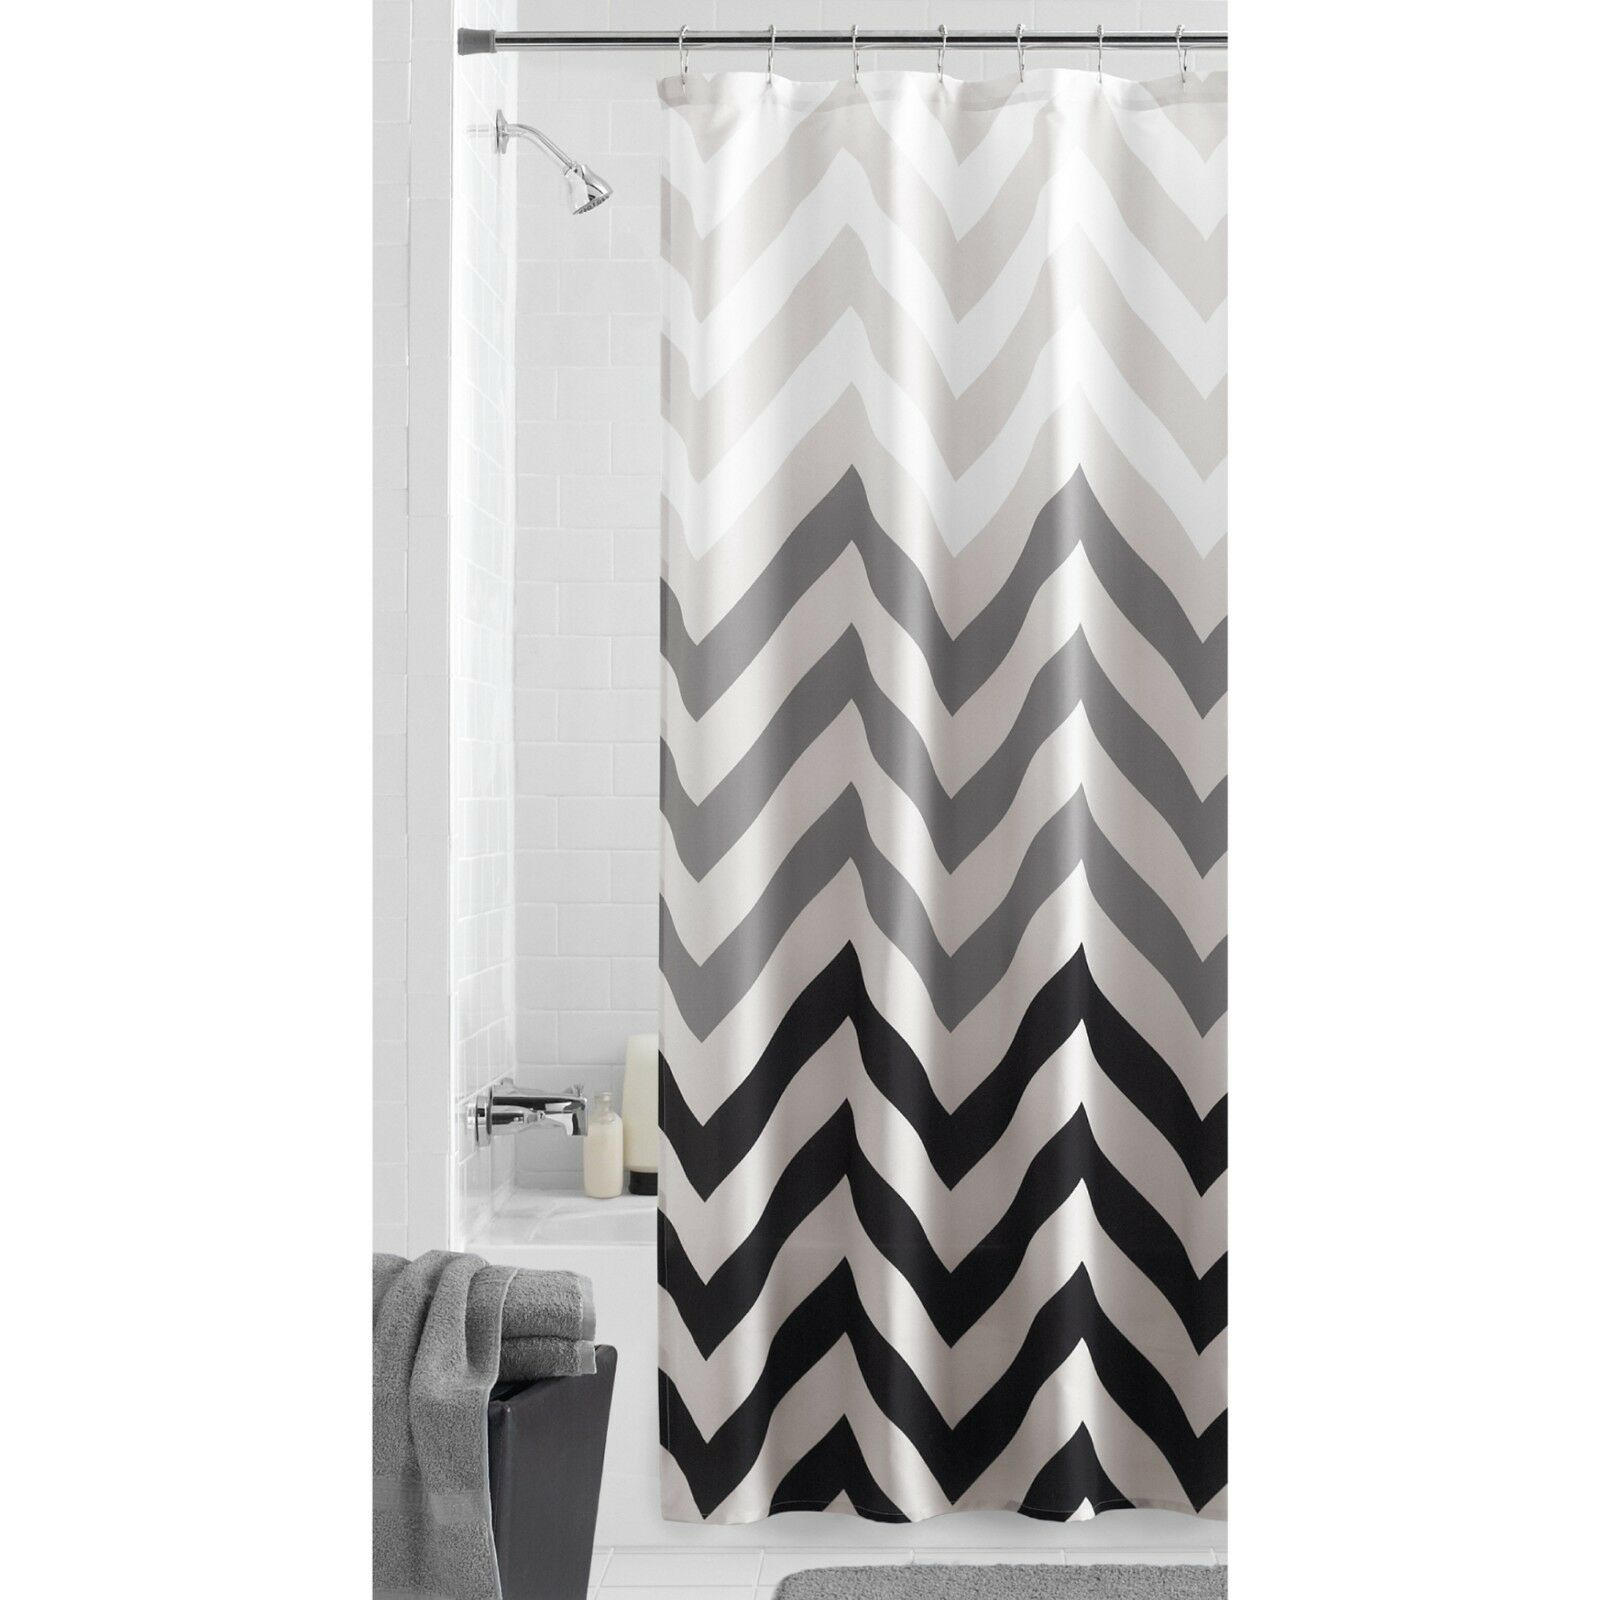 Details About New Mainstays Flux Chevron Fabric Shower Curtain Standard Size 70 In X 72 In